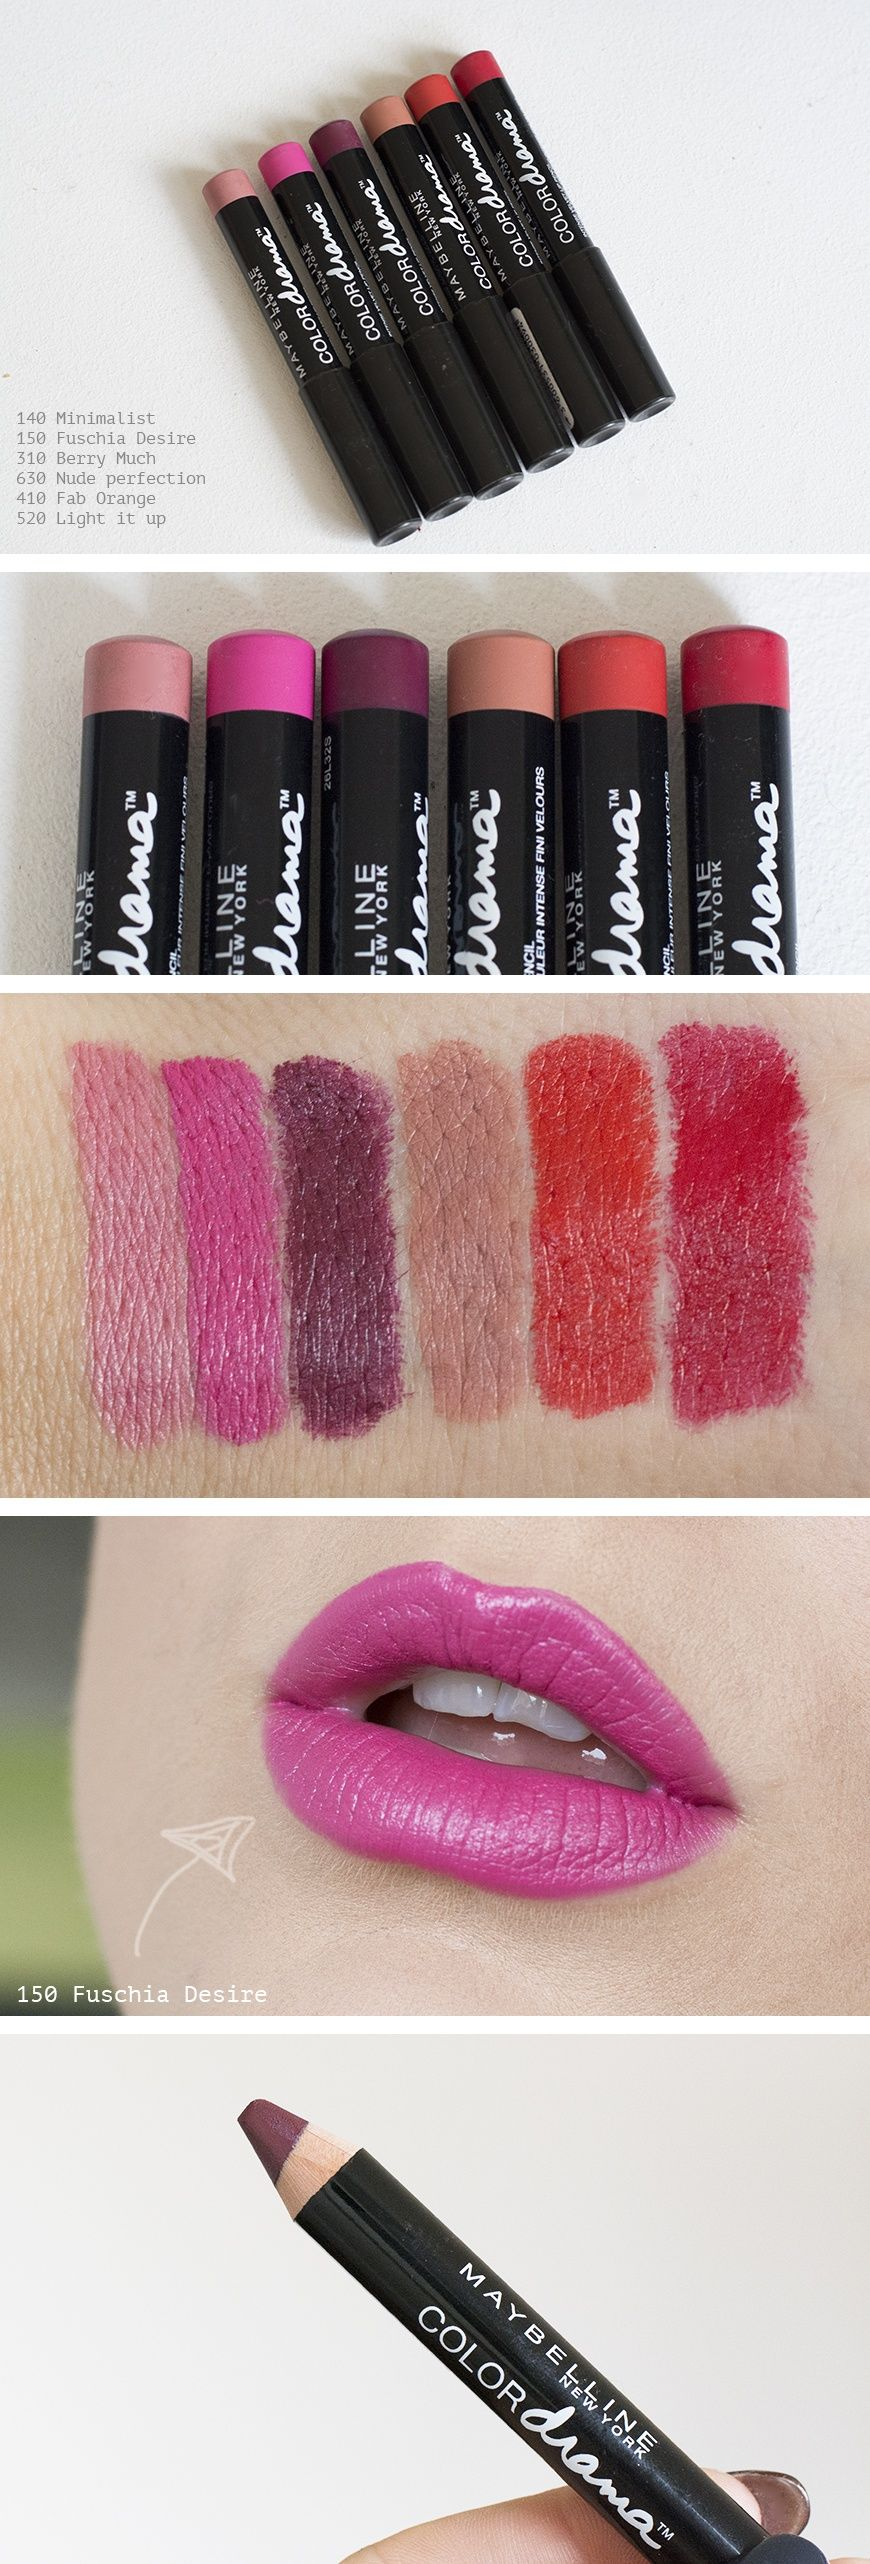 Maybelline Color Drama, I honestly want to buy every single shade